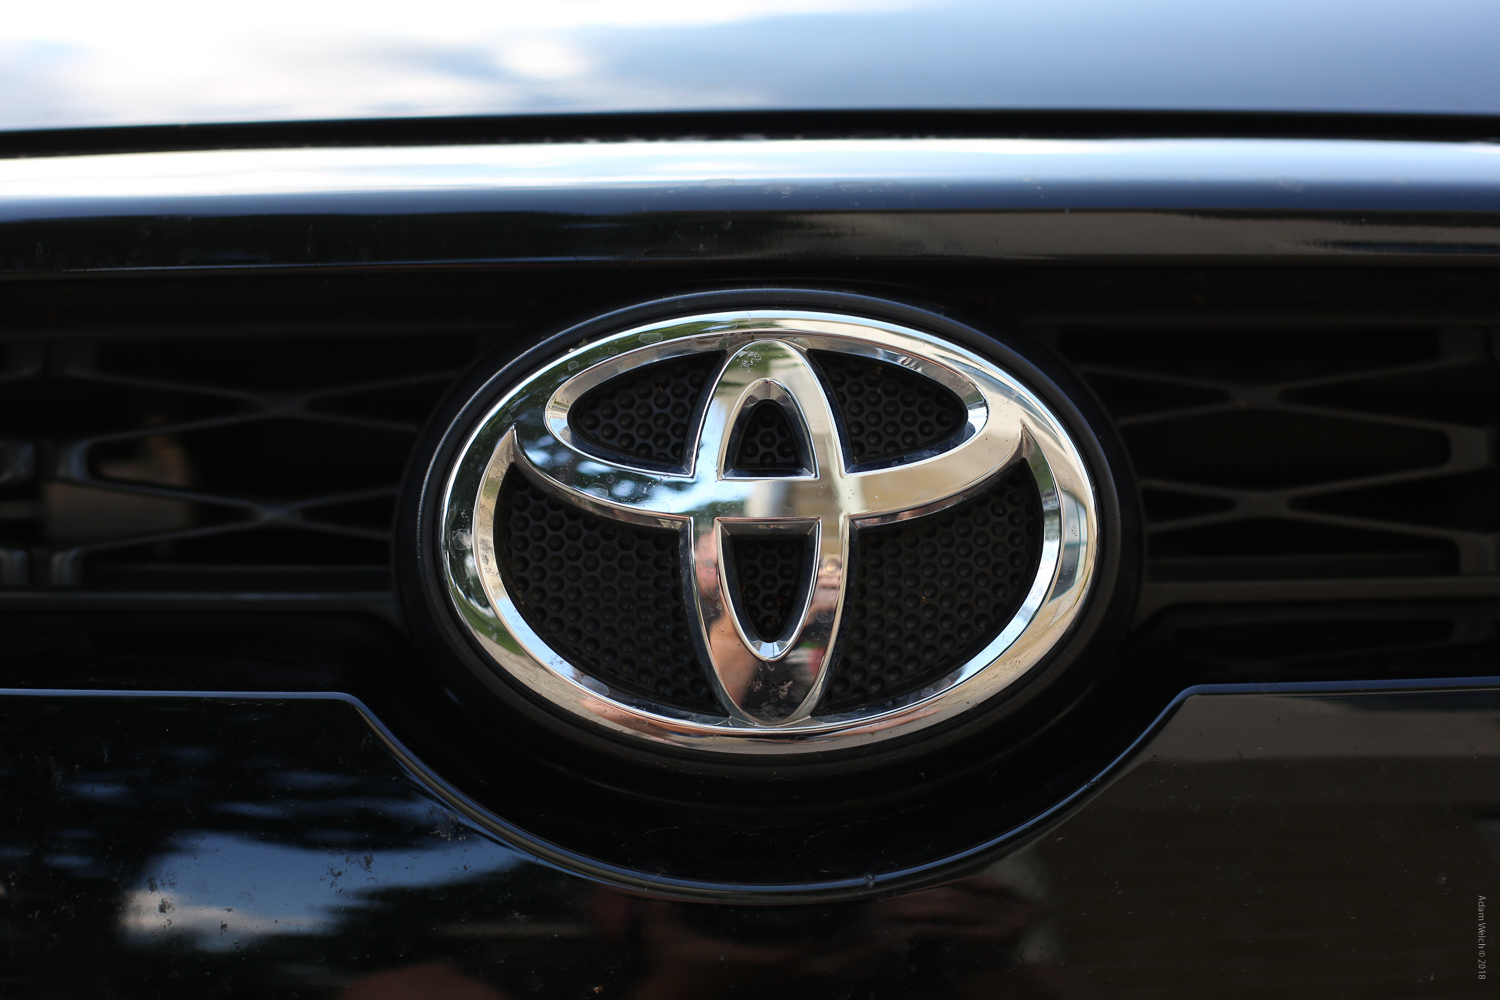 Toyota car logo - Mobile Phones Versus DSLRs